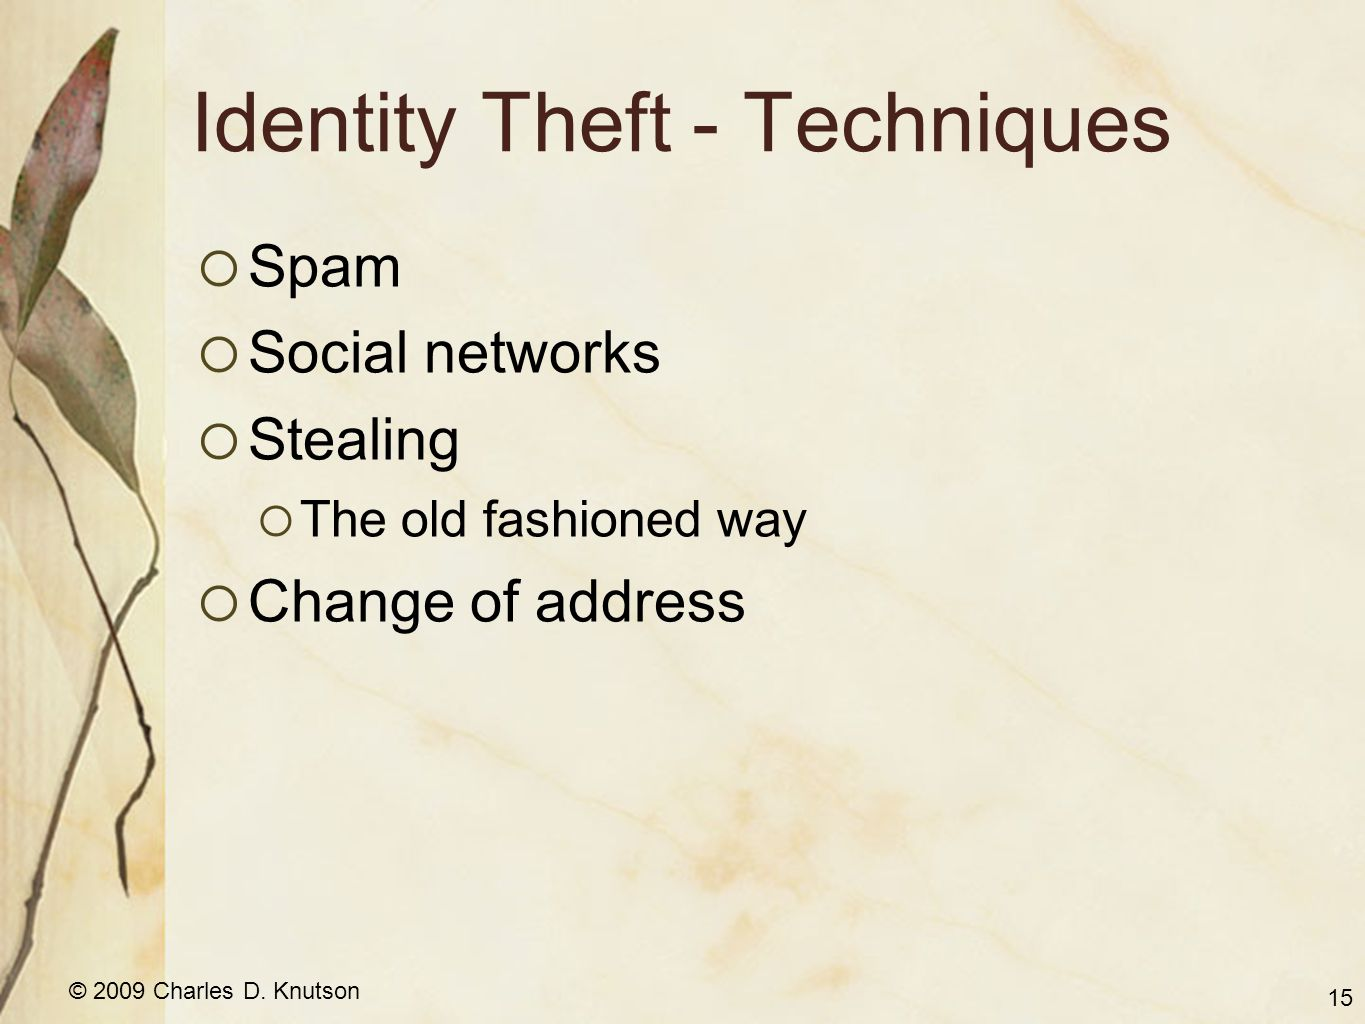 © 2009 Charles D. Knutson Identity Theft - Techniques Spam Social networks Stealing The old fashioned way Change of address 15